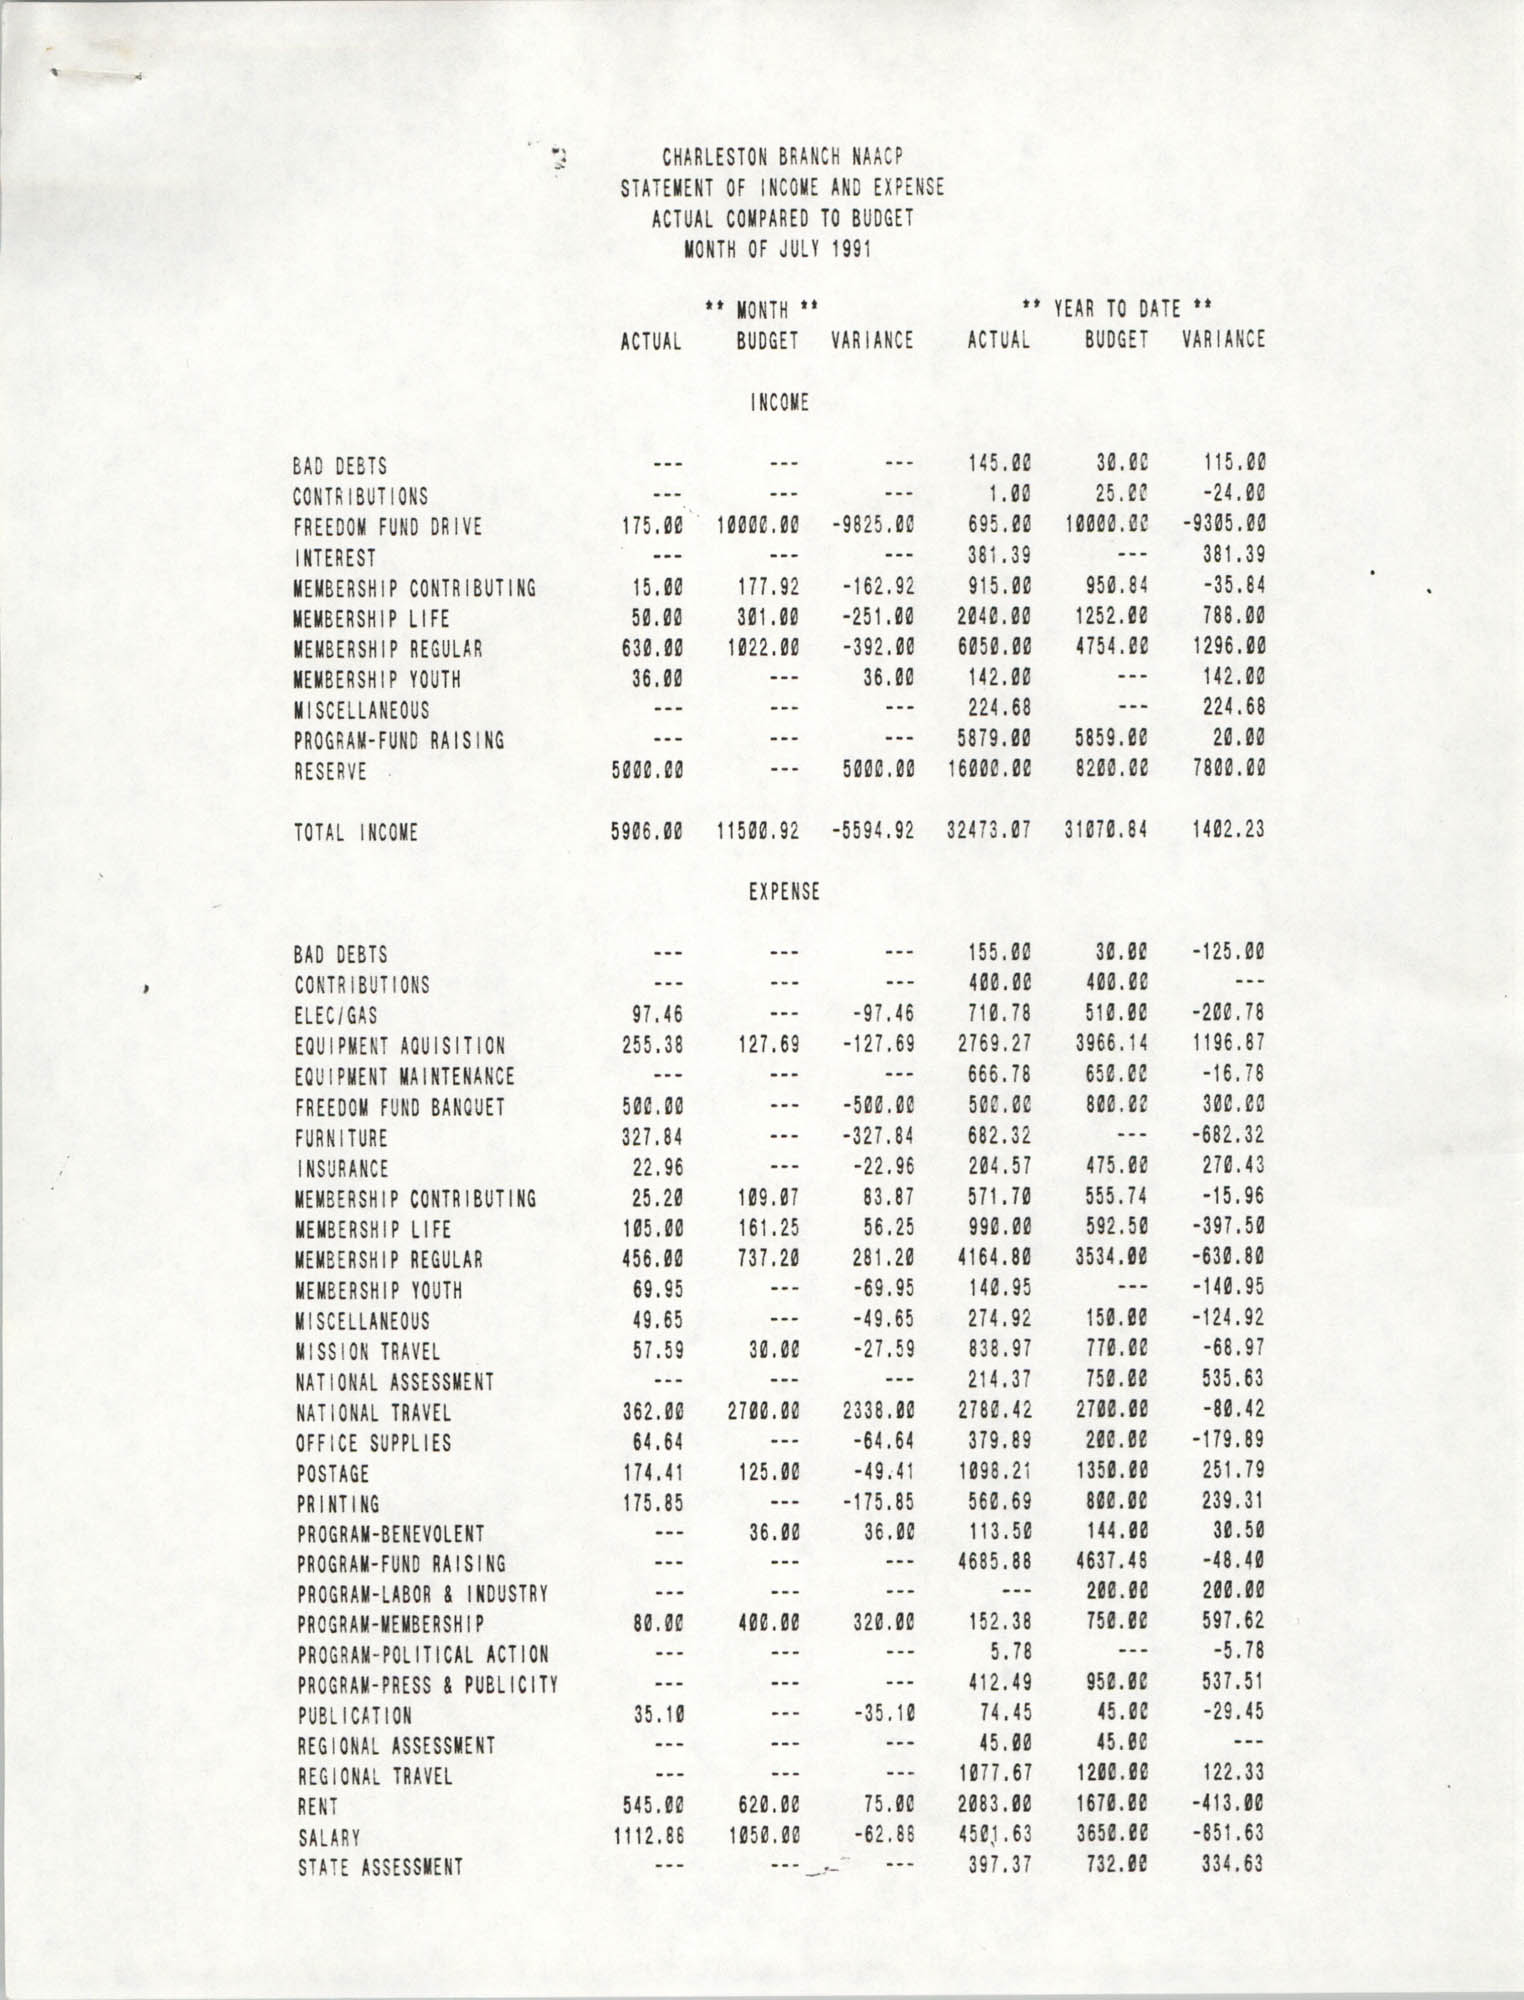 Charleston Branch of the NAACP Statement of Income and Expense, July 1991, Page 1